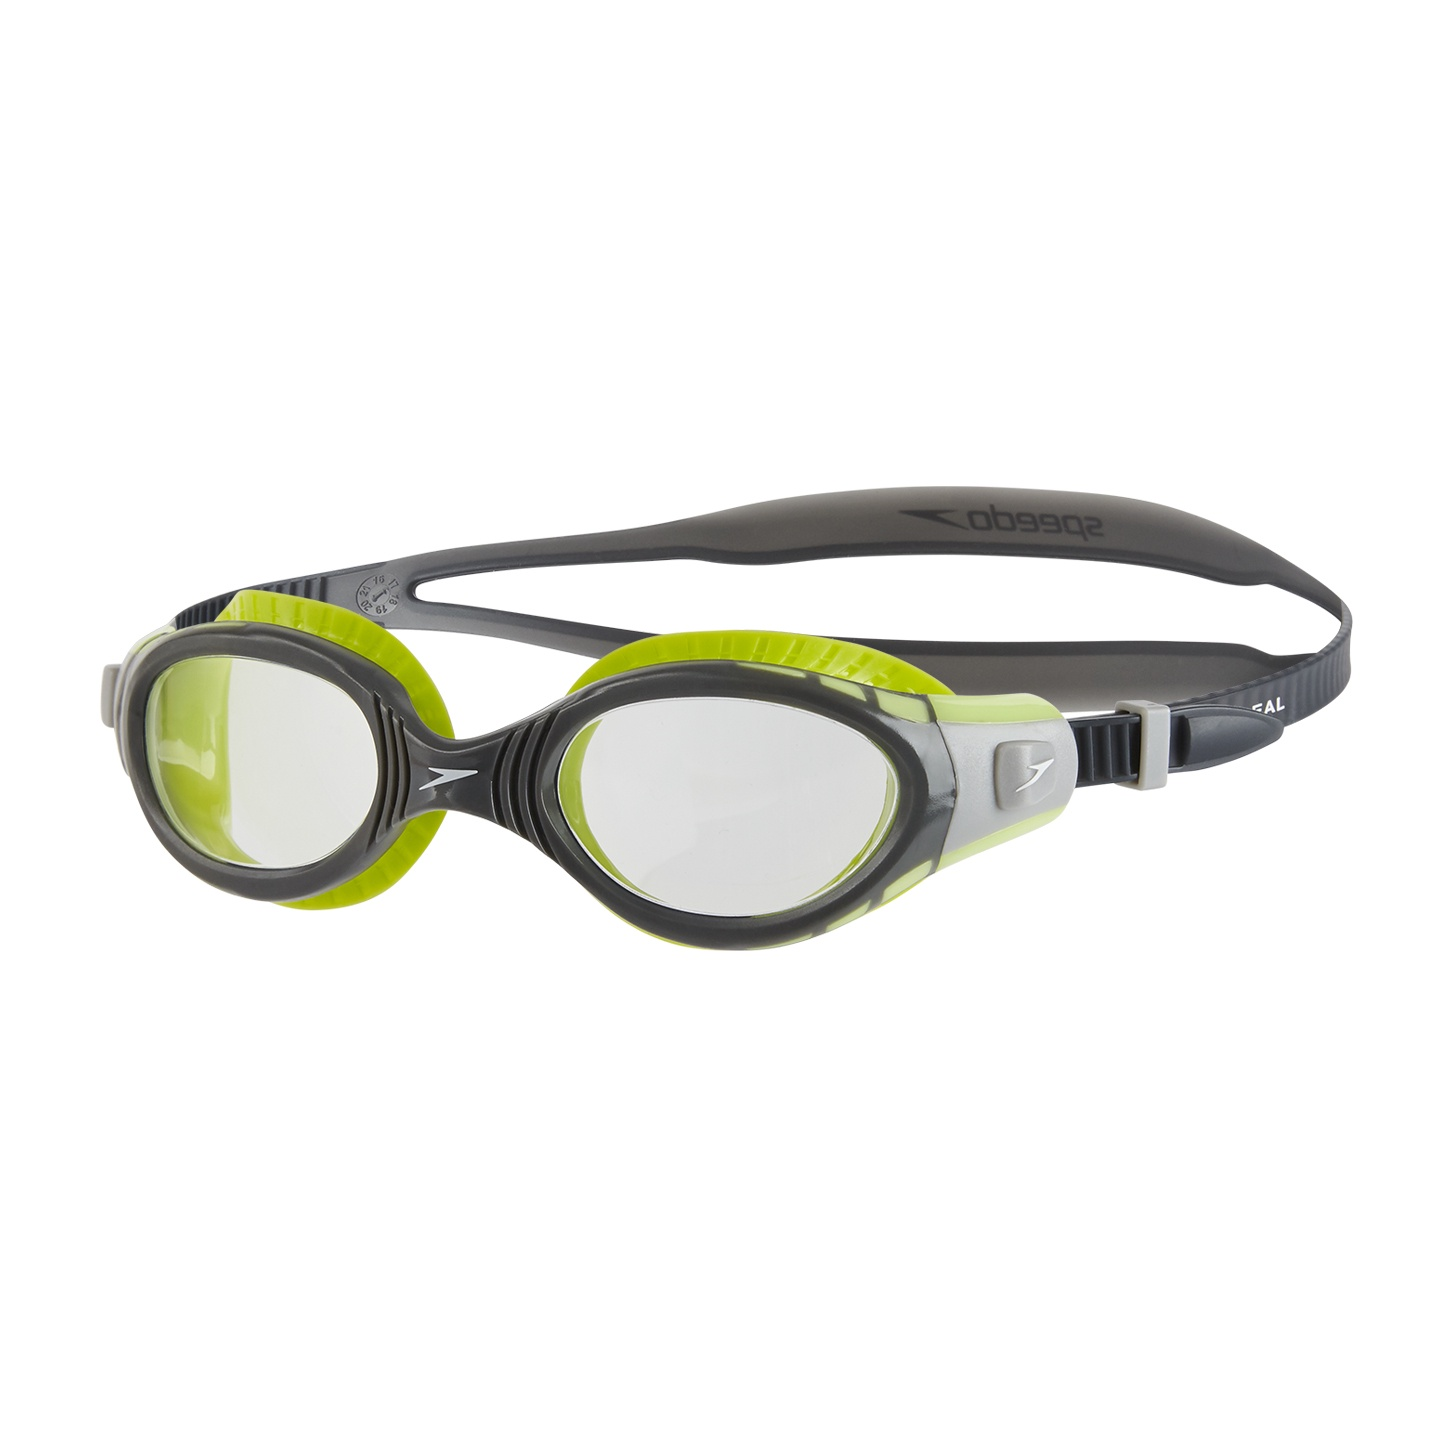 Futura Biofuse Flexiseal Goggles Lime/USA Charcoal/Clear